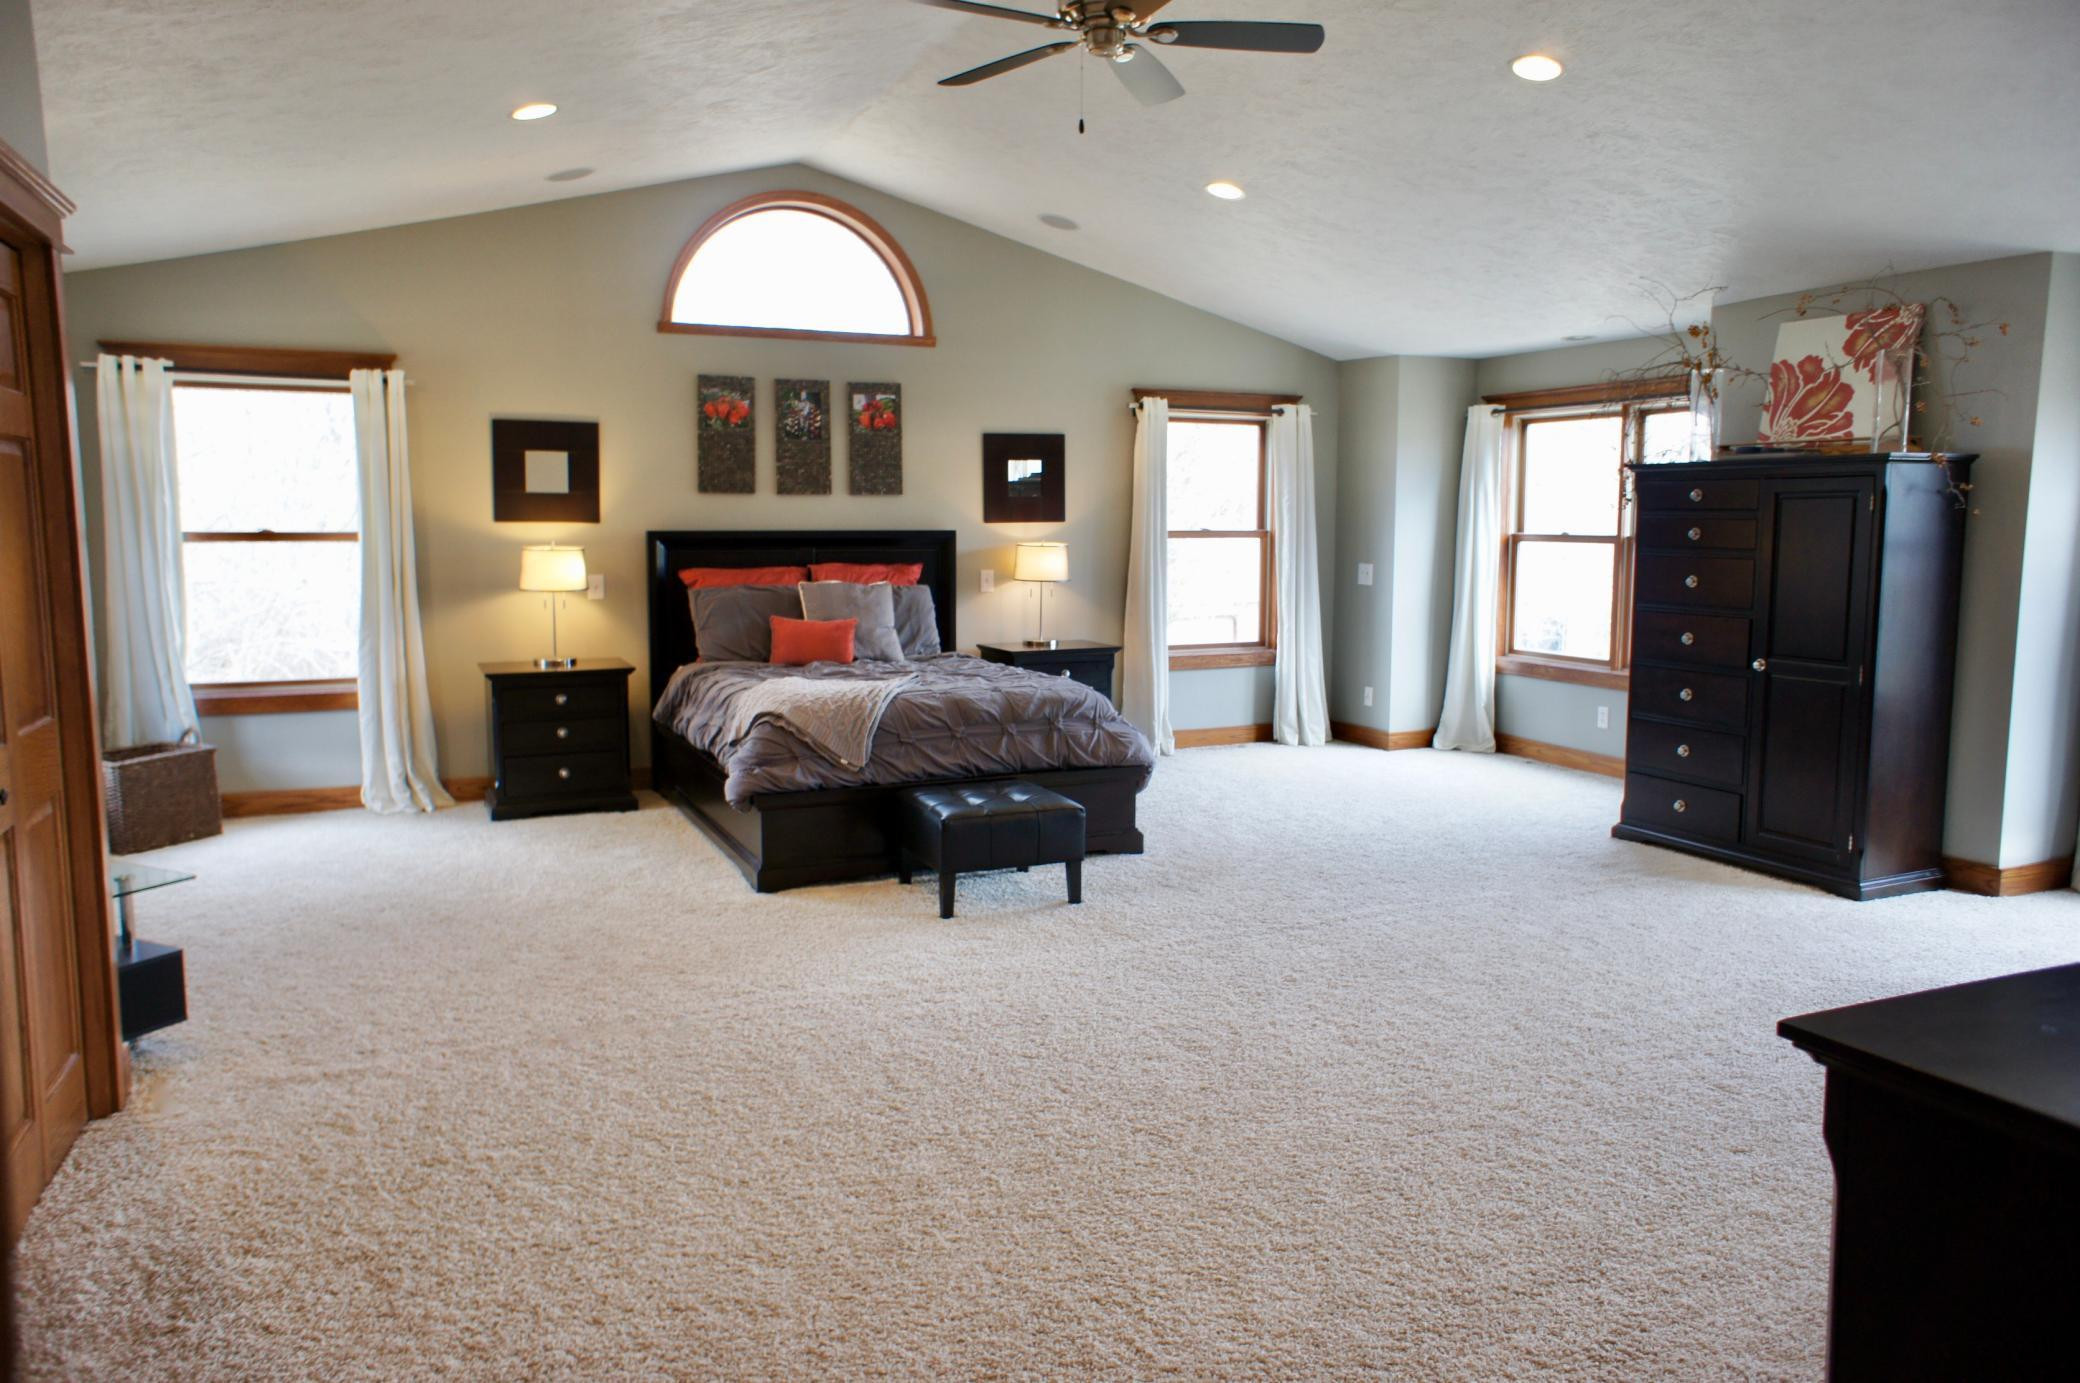 Spacious doesn't begin to describe this upper level master bedroom.